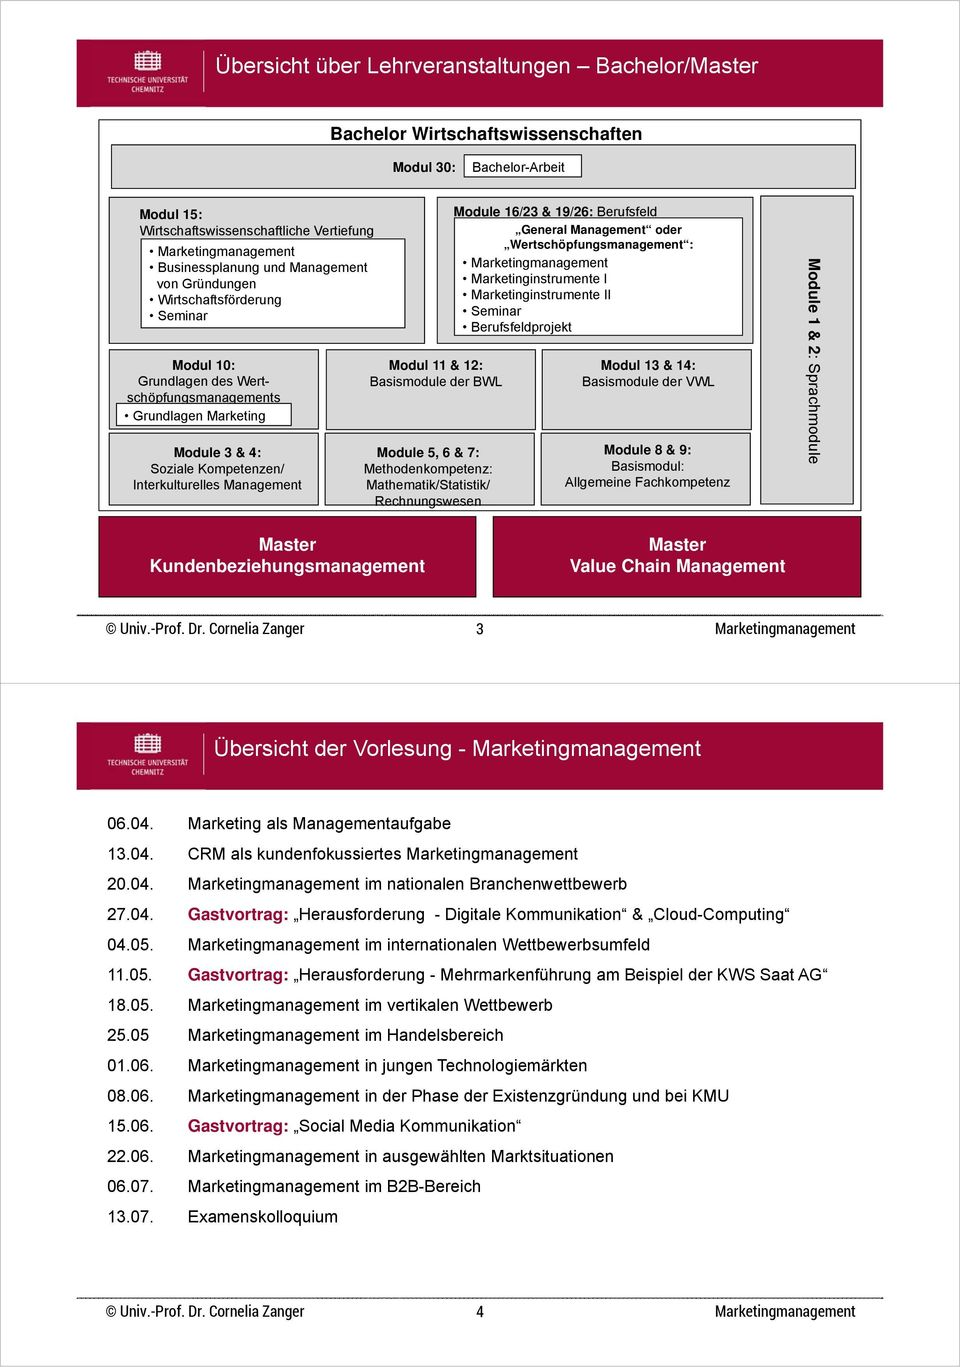 Basismodule der BWL Module 5, 6 & 7: Methodenkompetenz: Mathematik/Statistik/ Rechnungswesen Module 16/23 & 19/26: Berufsfeld General Management oder Wertschöpfungsmanagement : Marketinginstrumente I